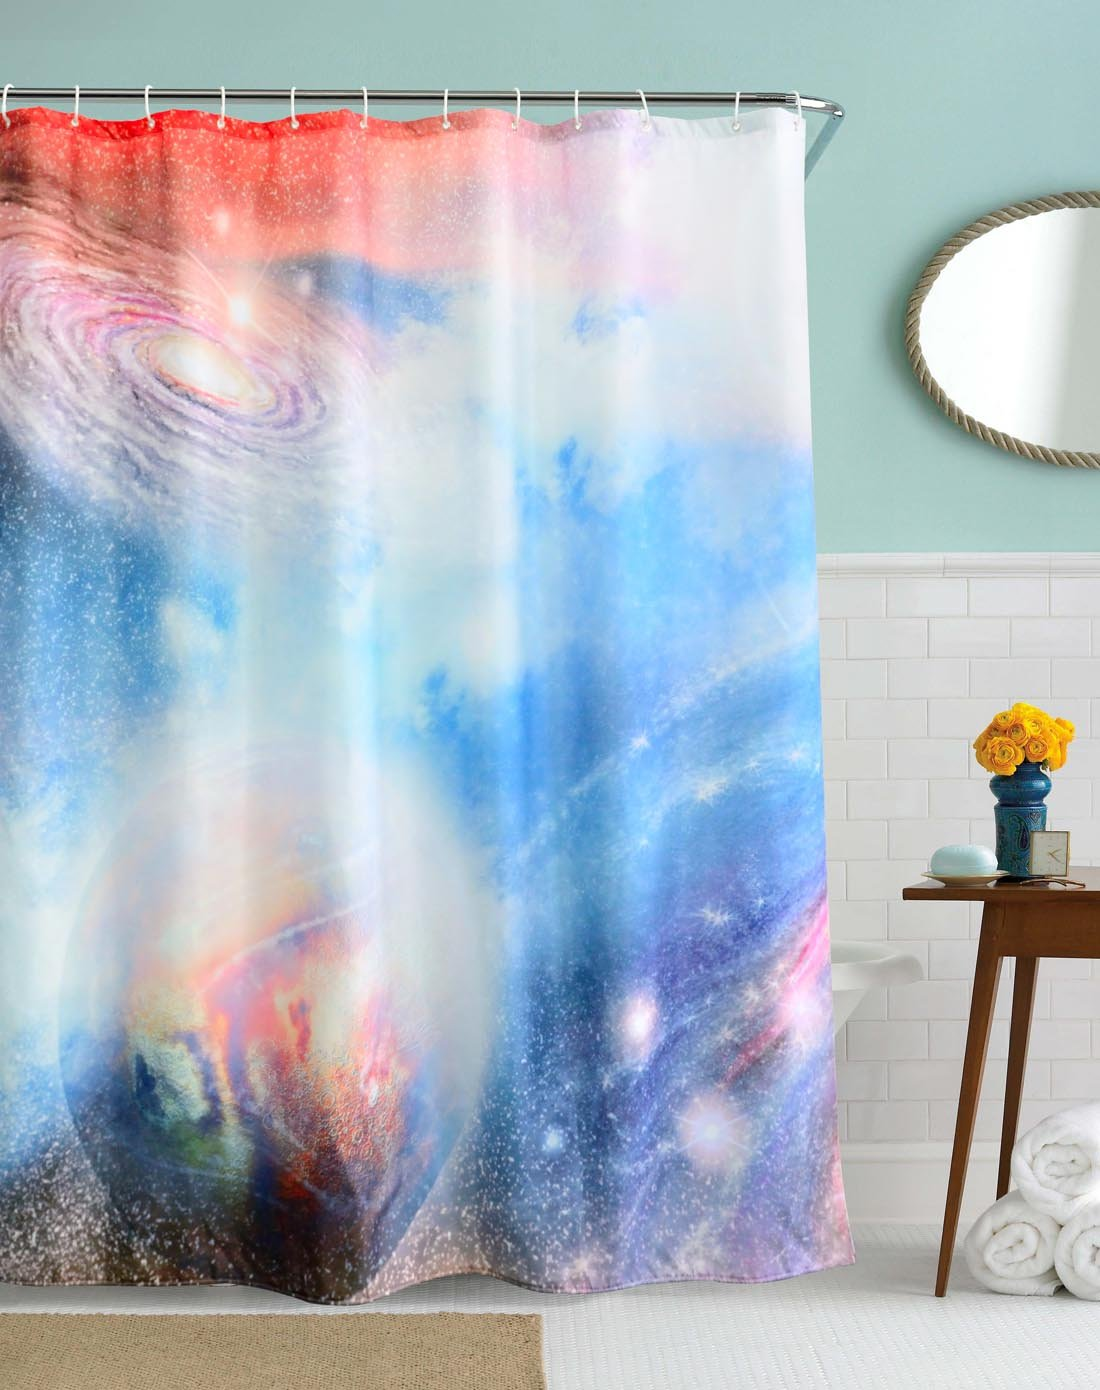 """CHICHIC 71"""" x 71"""" Thickening Shower Curtain Liner Liners, 100% Mildew Resistant Waterproof & Water Repellent Antibacterial Polyster for Decorative Bathroom Curtains Spa Hotel Luxury, Cosmos"""